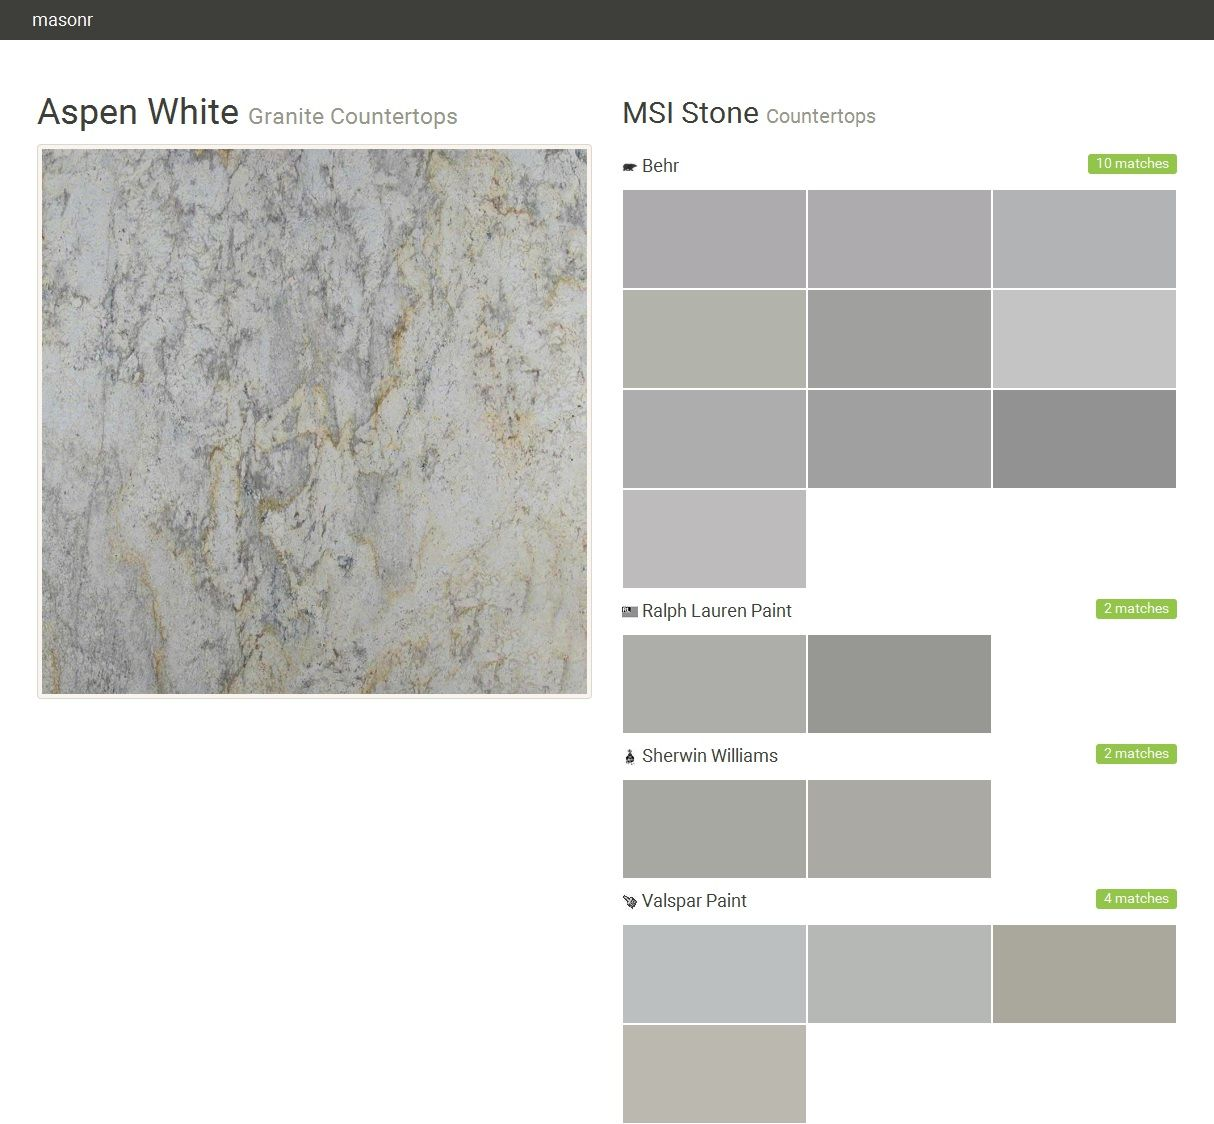 Aspen White Granite Countertops Msi Stone Behr Ralph Lauren Paint Sherwin Williams Valspar Click The Gray Visit On To See